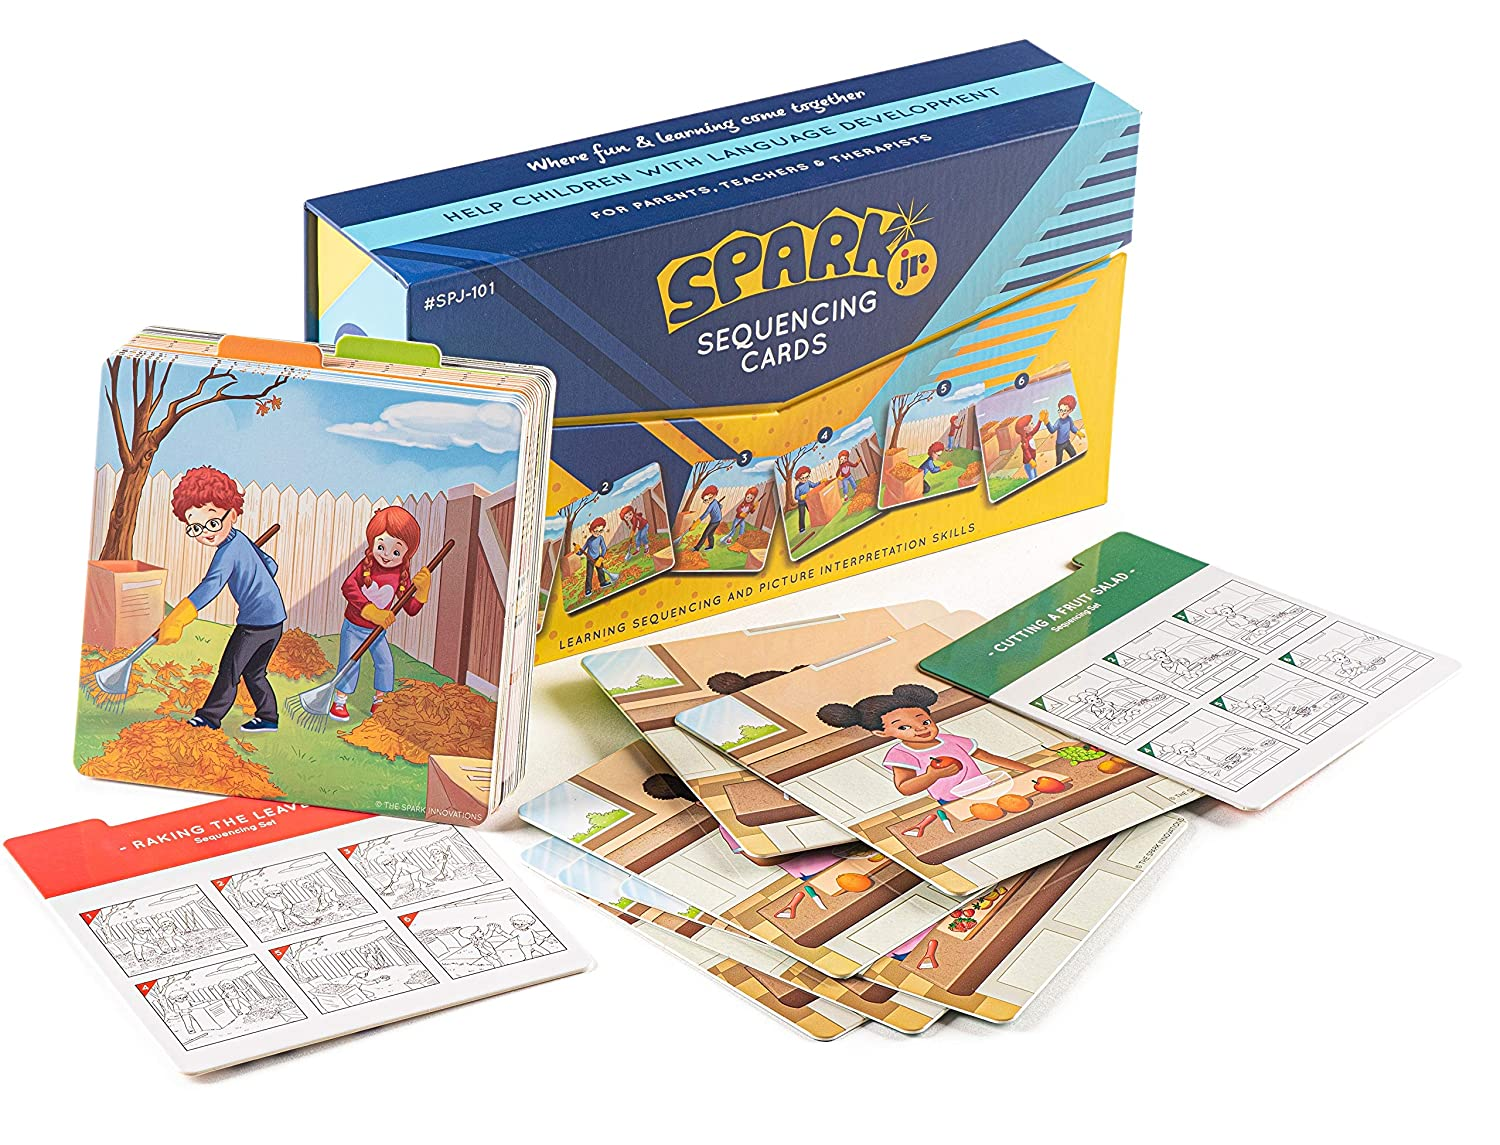 Spark Cards Jr Basic Sequence Cards for Storytelling and Picture Interpretation Speech Therapy Game, Special Education Materials, Sentence Building, Problem Solving, Improve Language Skills